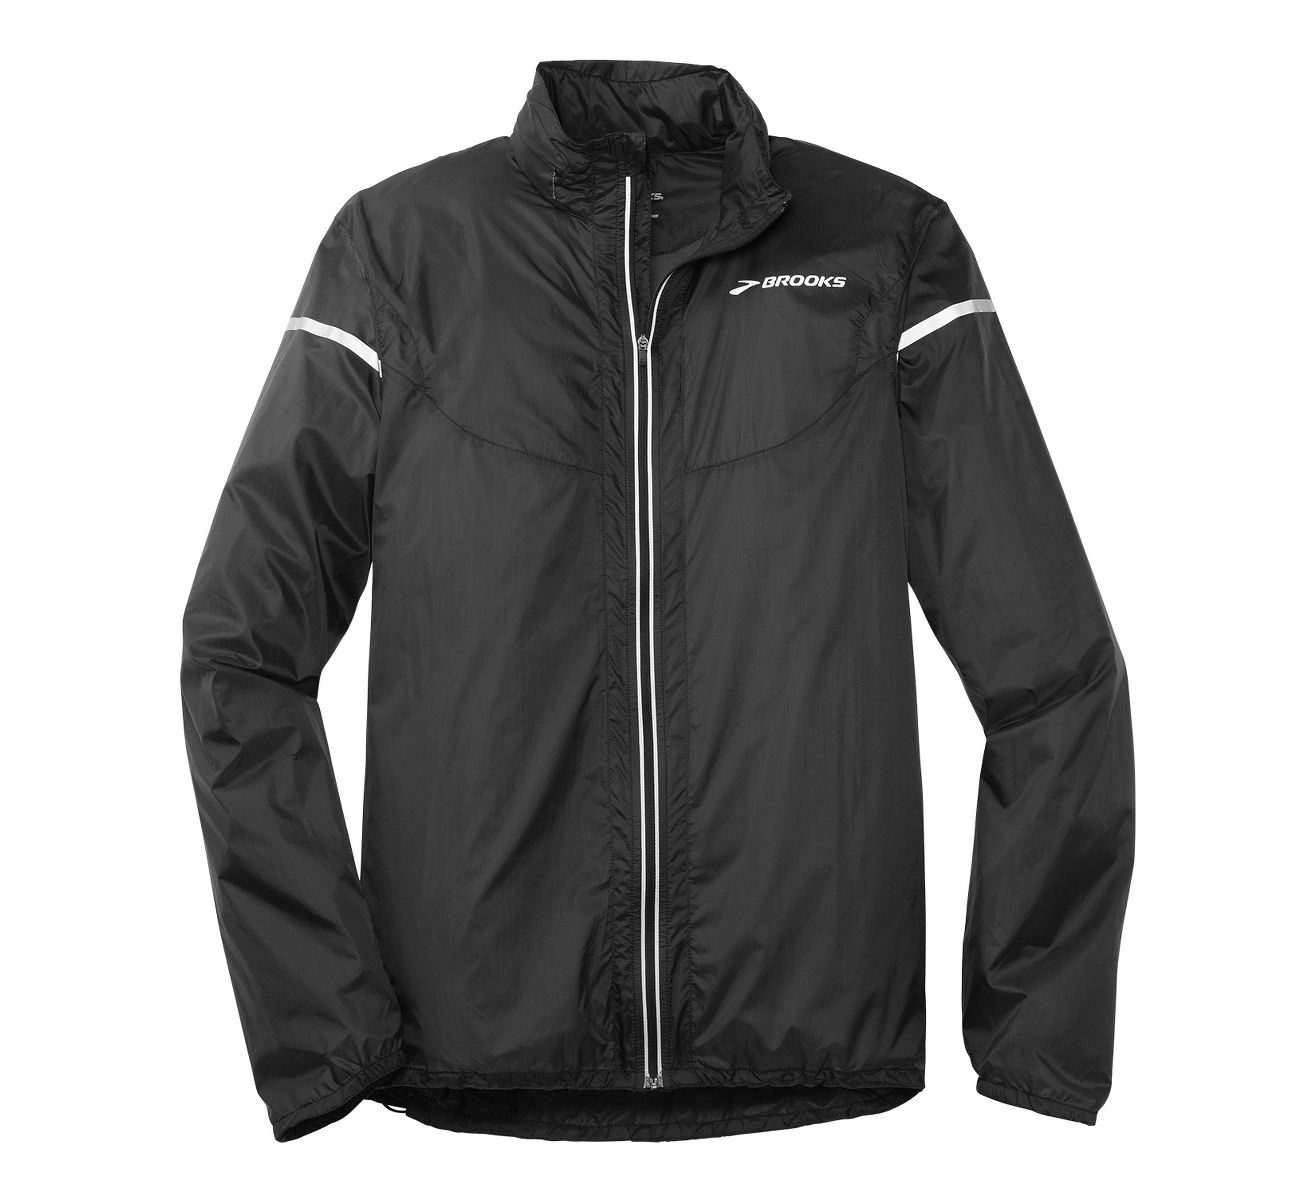 Running Jackets For Rain - Best Jacket 2017